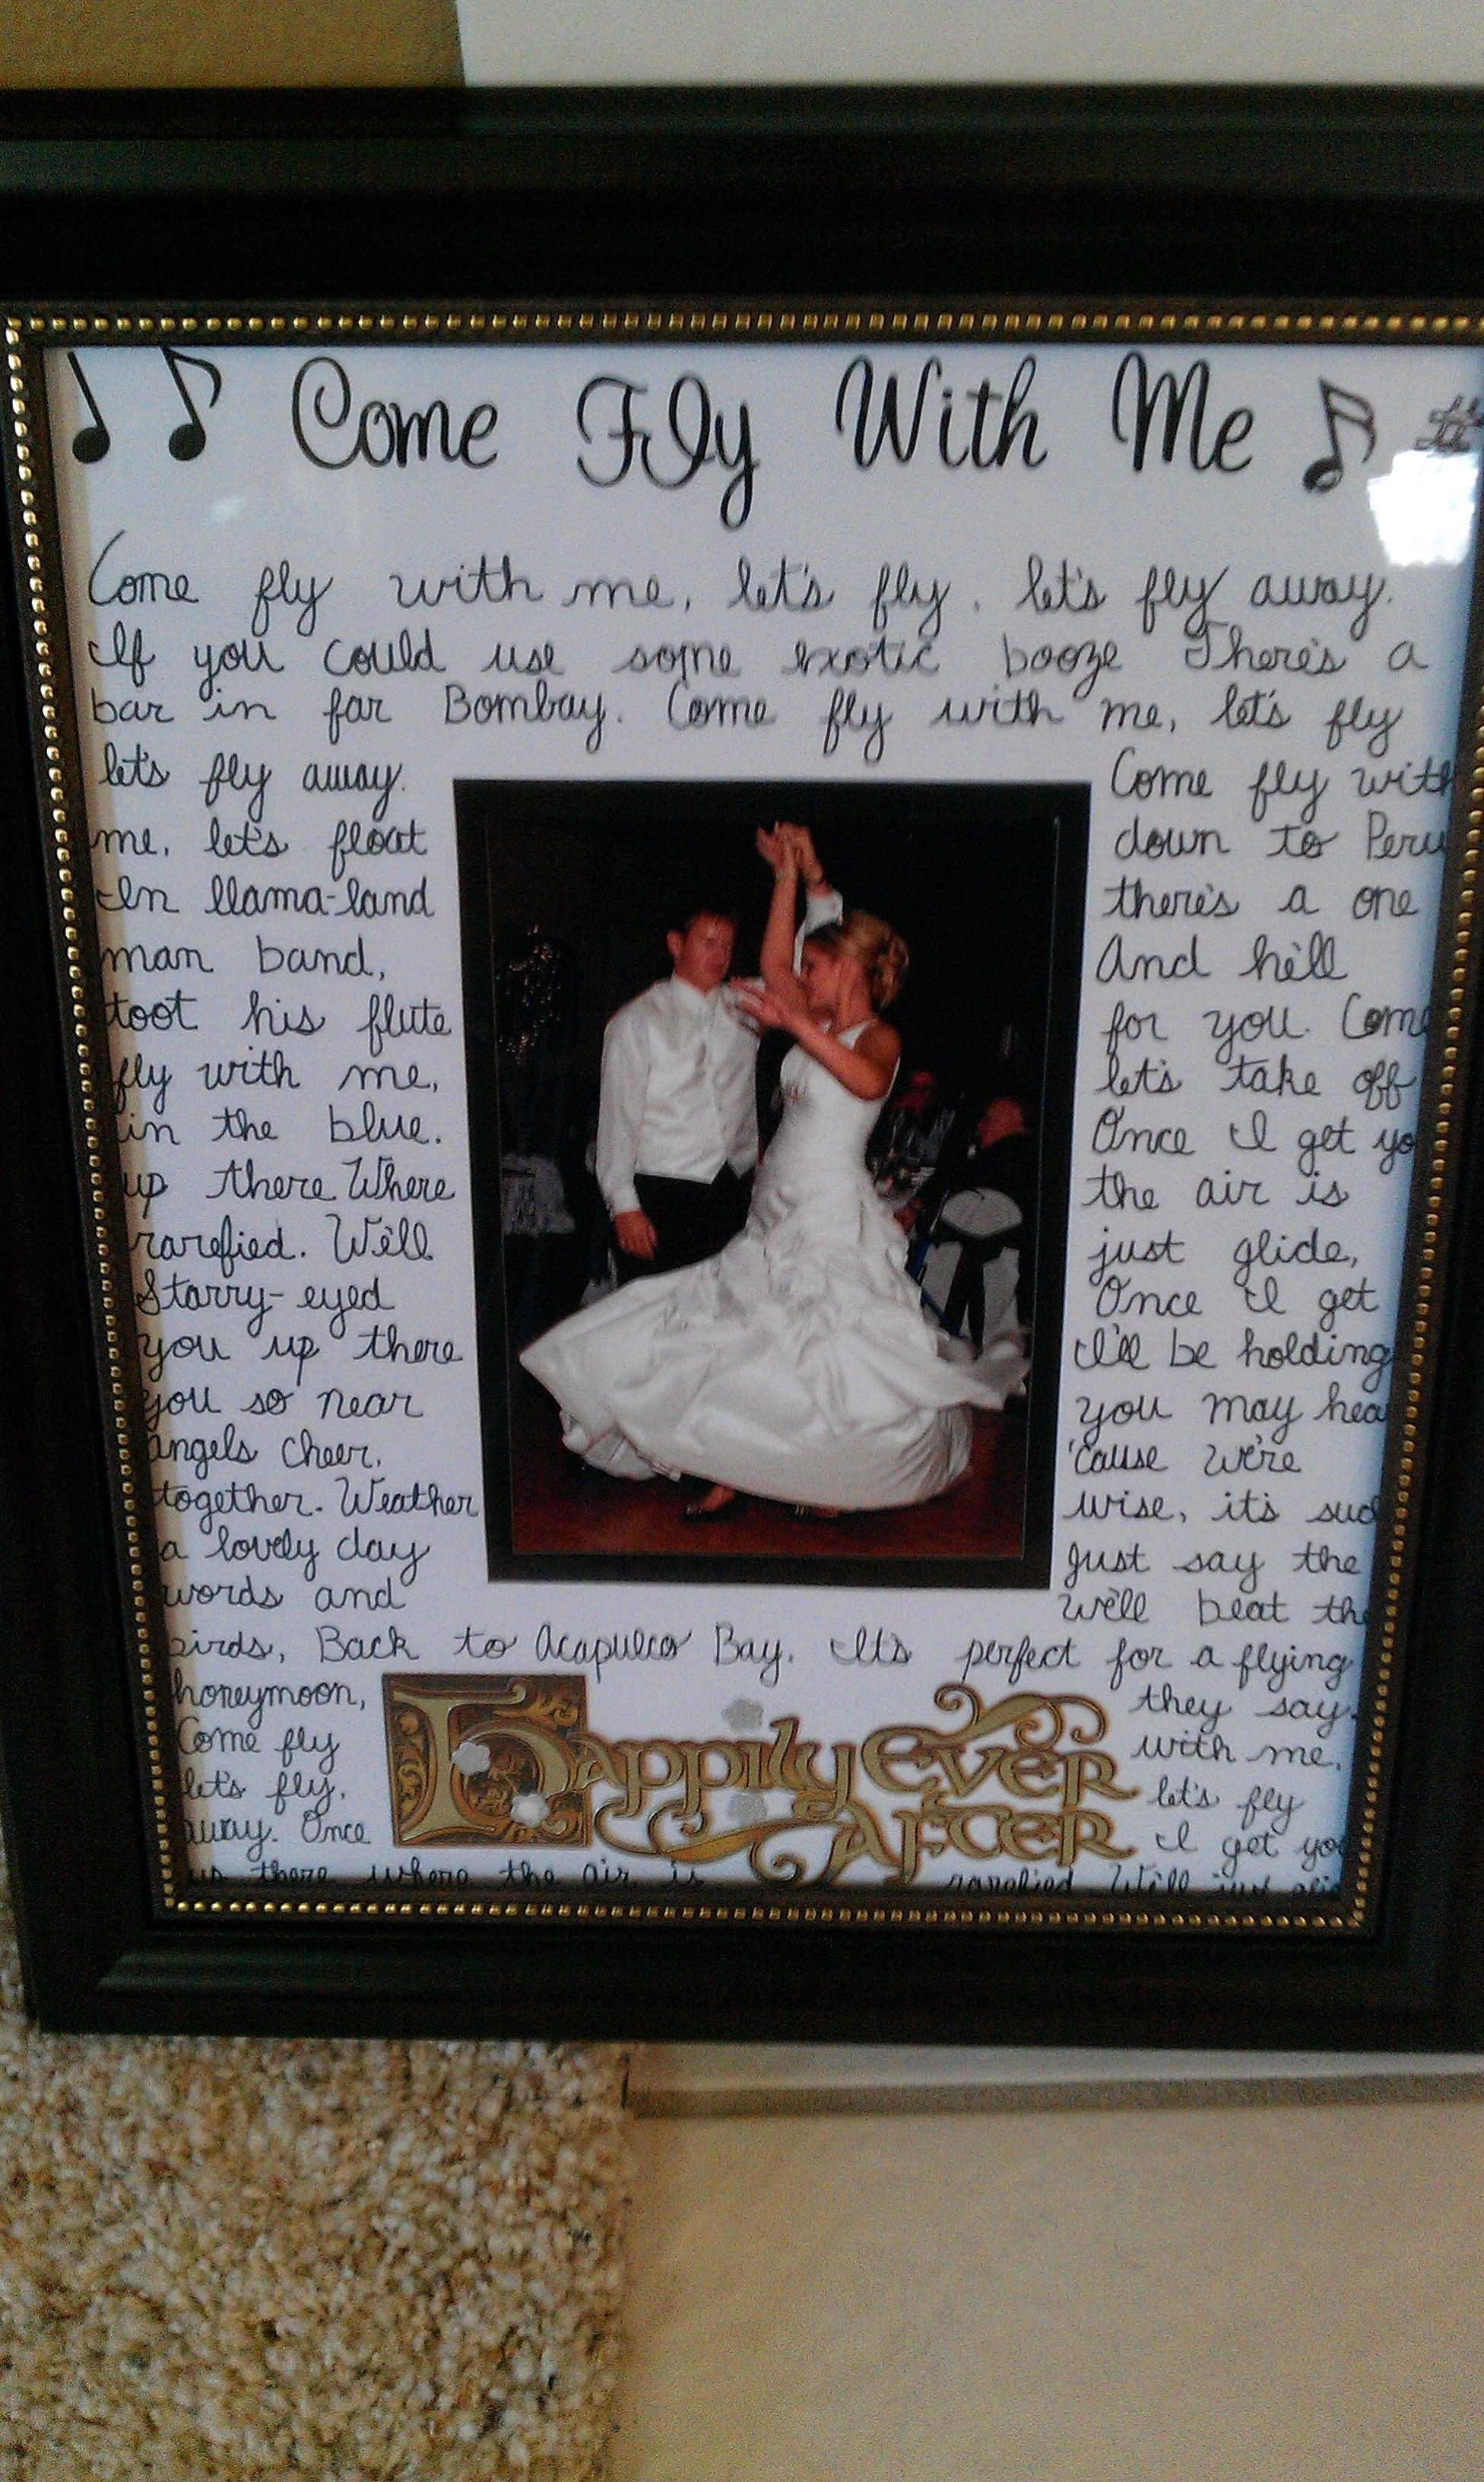 First dance frame with lyrics all you need is ame rst first dance frame with lyrics all you need is ame rst dance photo ng lyrics arpie oto mat frame pinteres jeuxipadfo Gallery